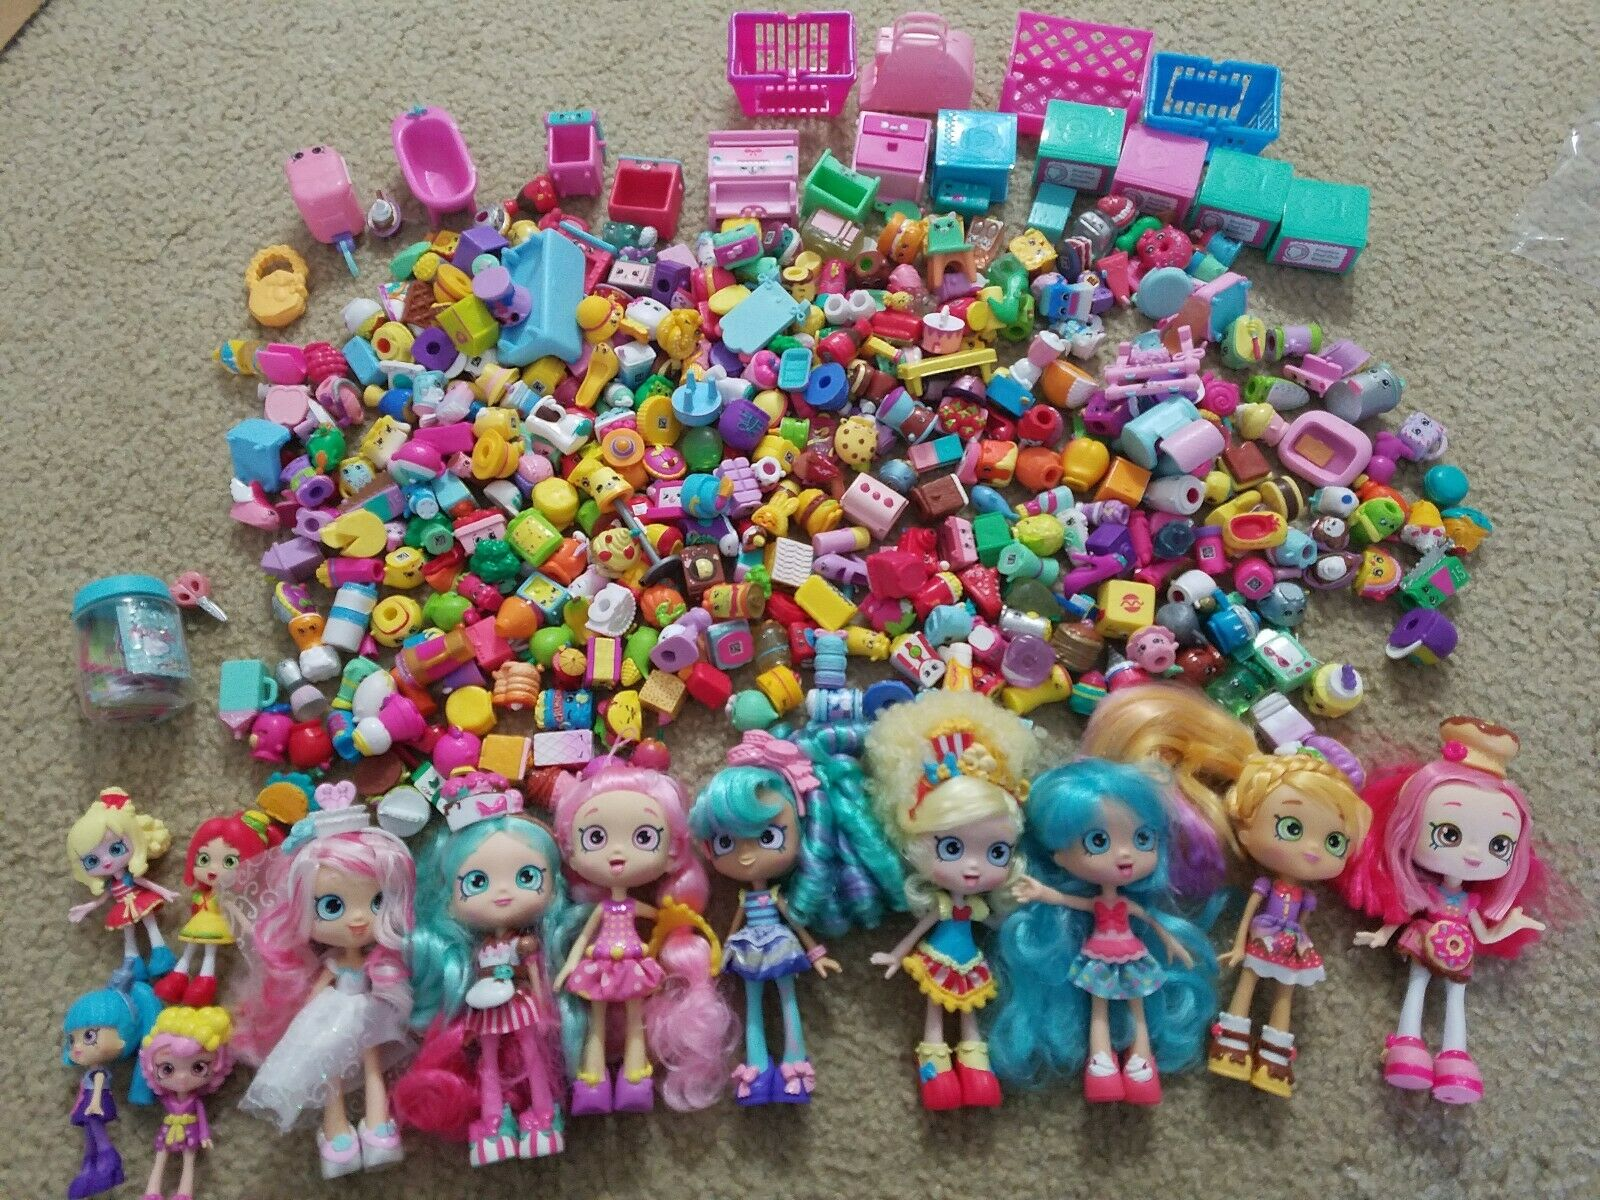 HUGE Shopkins lot + 13 Dolls & Accessories Moose Toys over 450pc